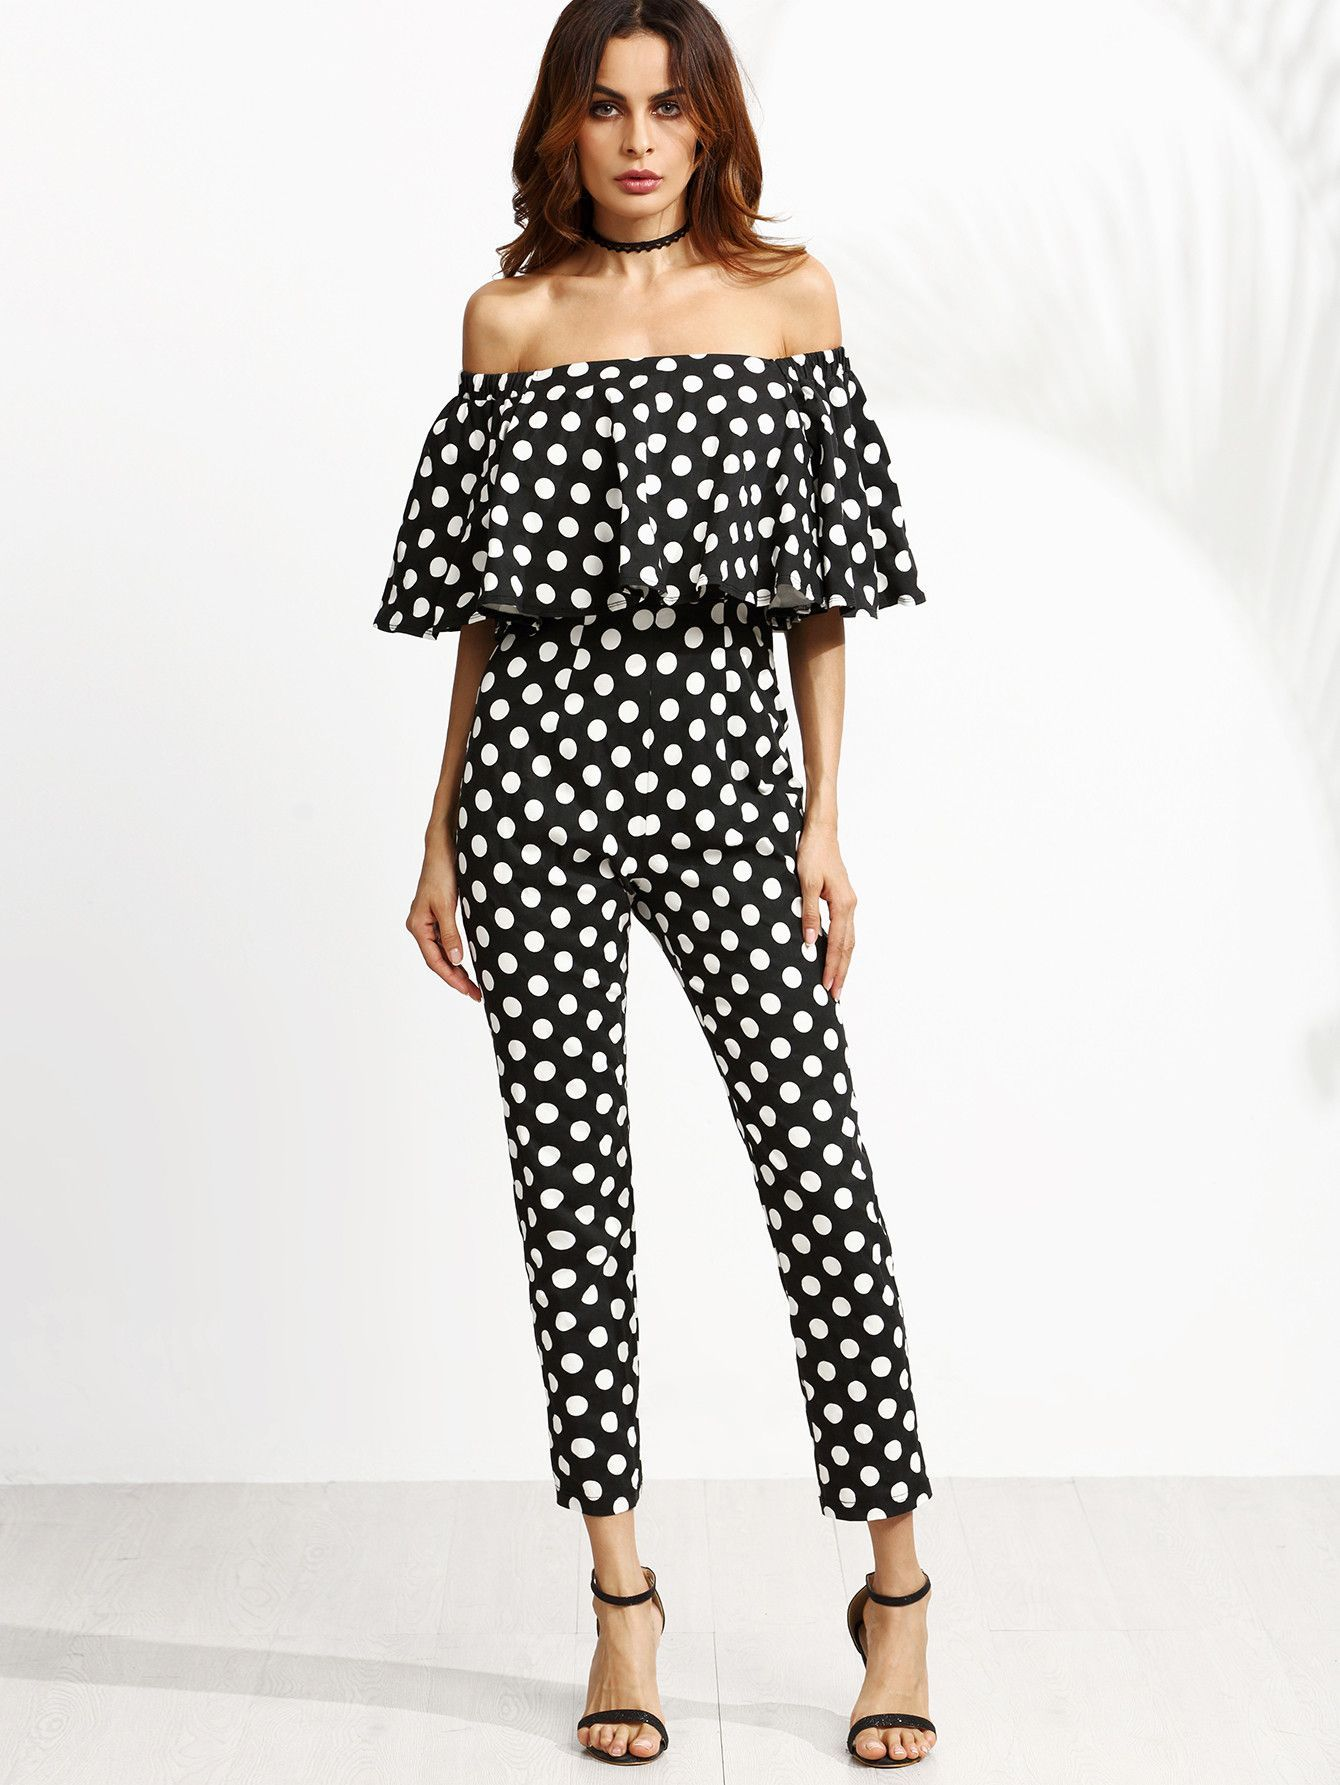 e1c833ebe1 It's doesn't get more bold and trendy than this amazing one piece polka dot  jumpsuit! We love everything about it! - Bust(Cm): - XS:79cm, S:83cm,  M:87cm, ...